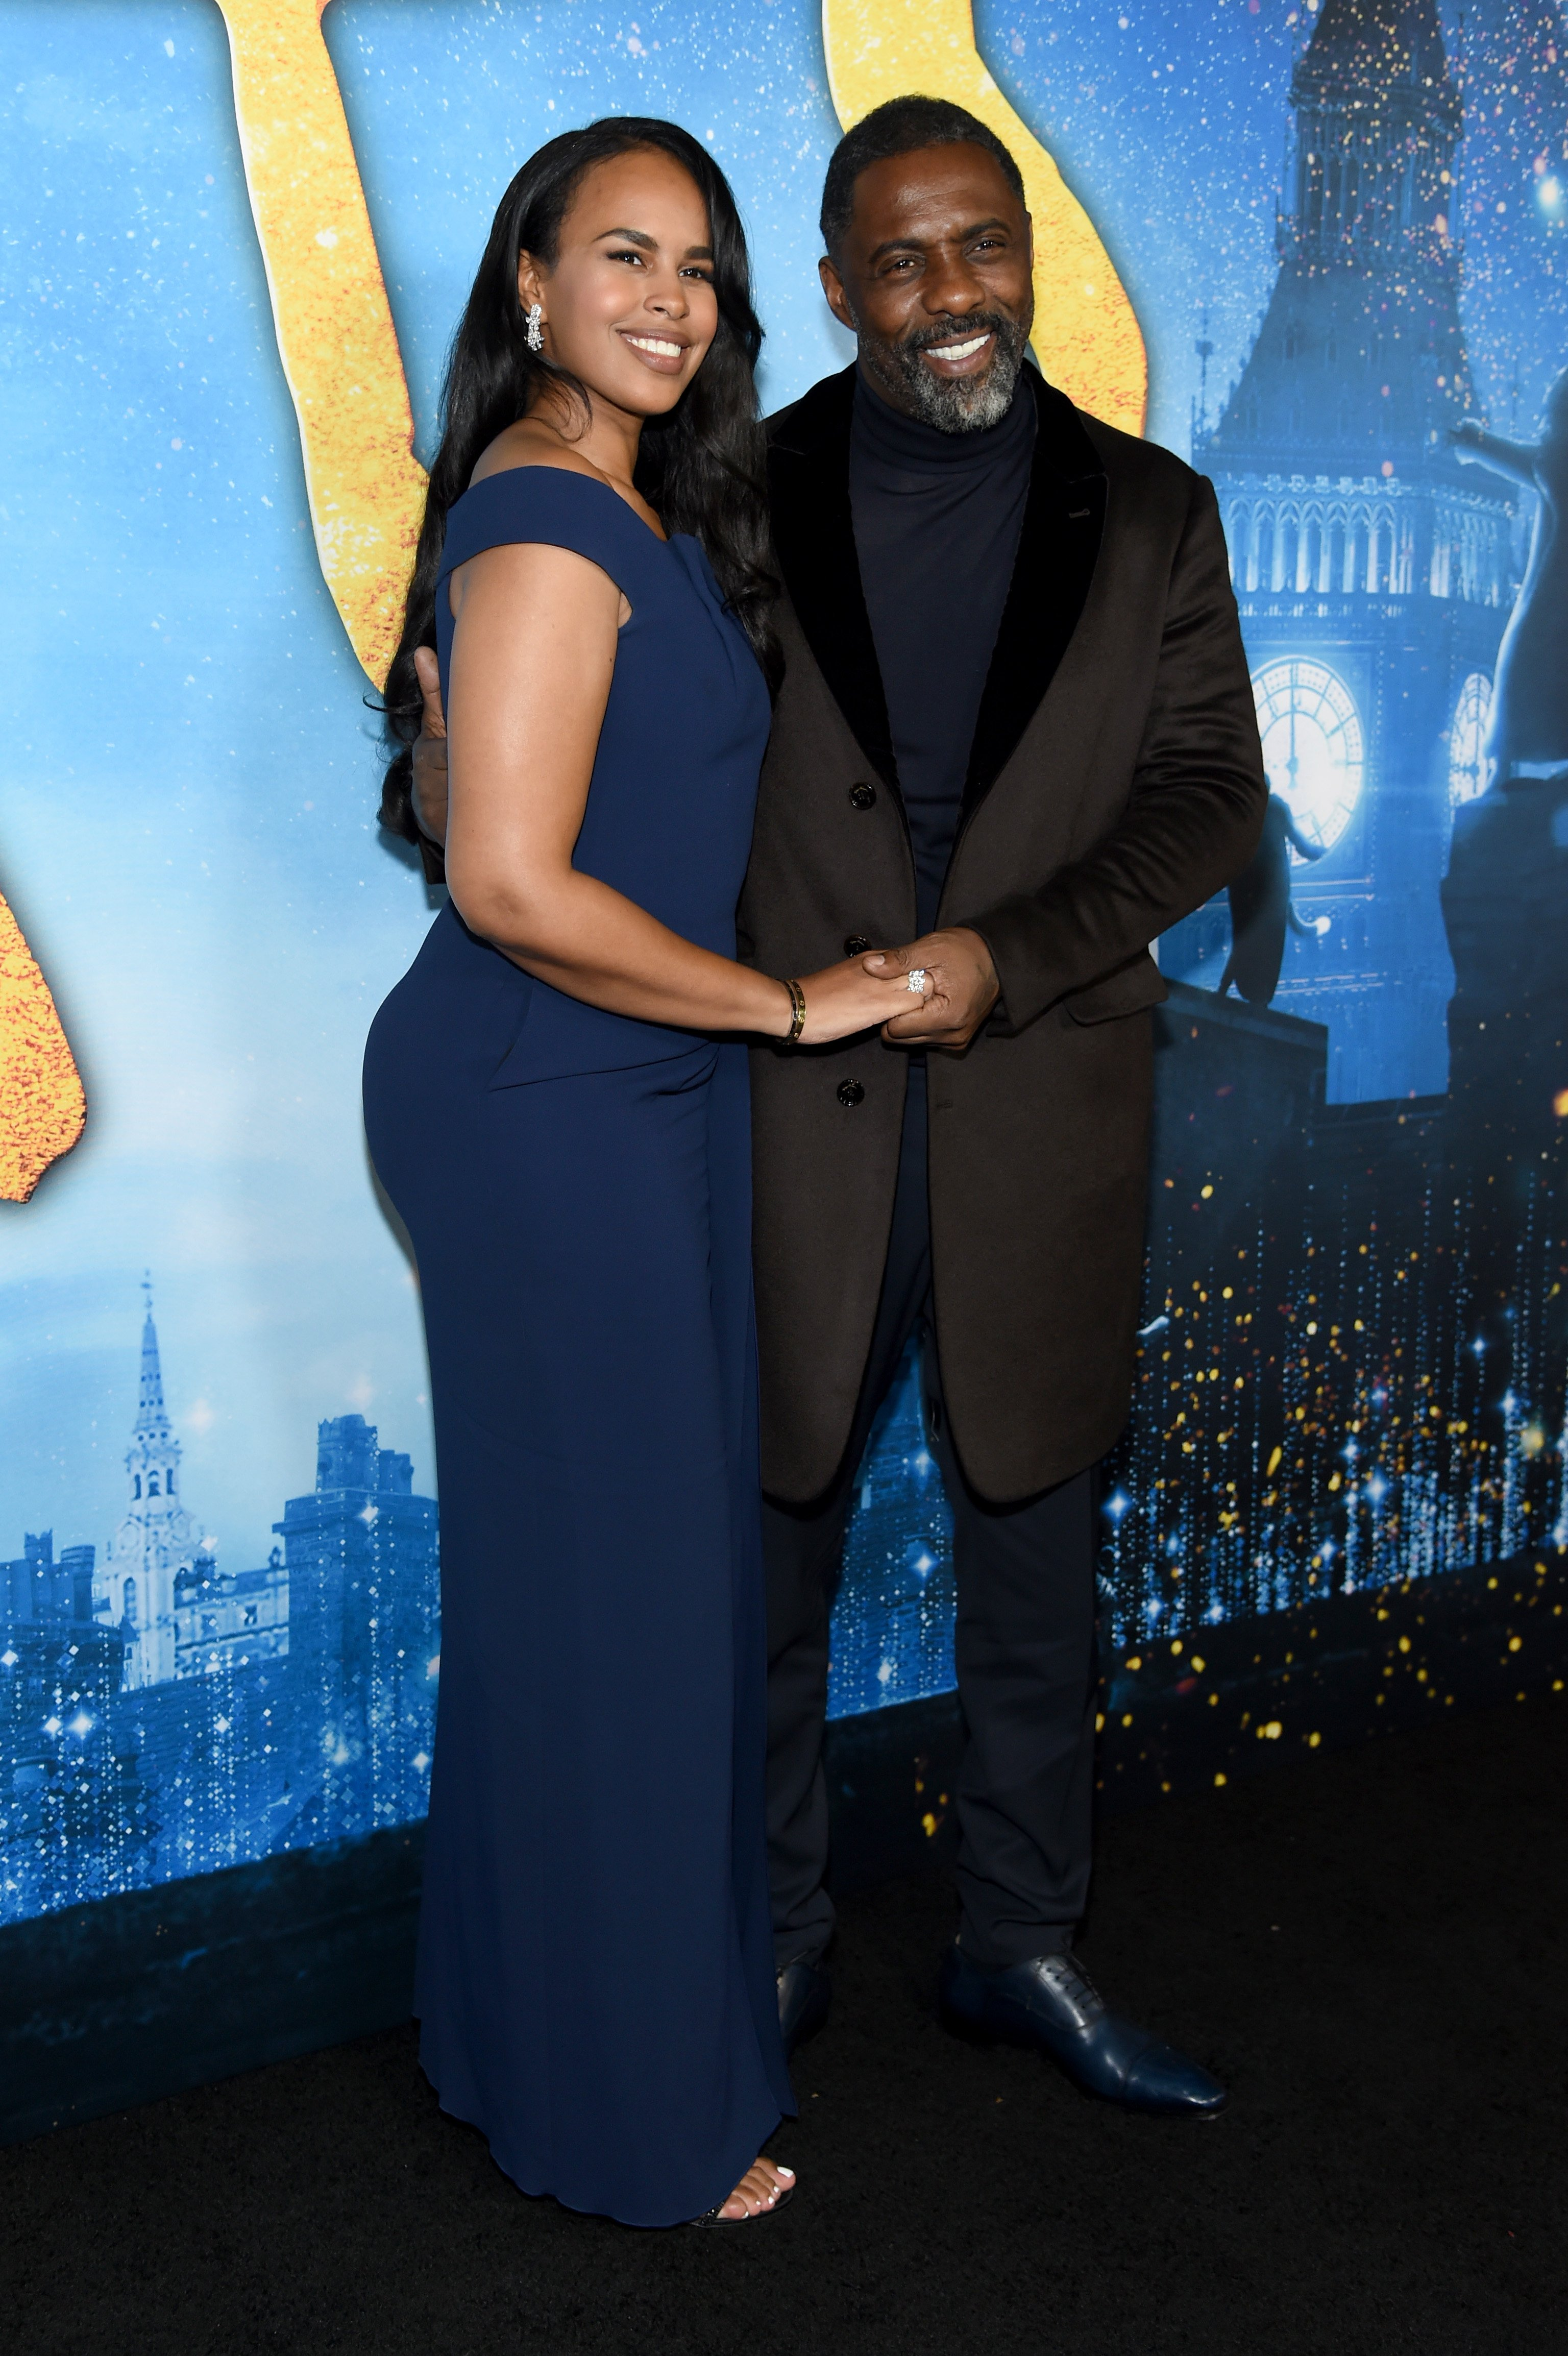 """Sabrina Elba and Idris Elba at the world premiere of """"Cats"""" in New York City on December 16, 2019. 